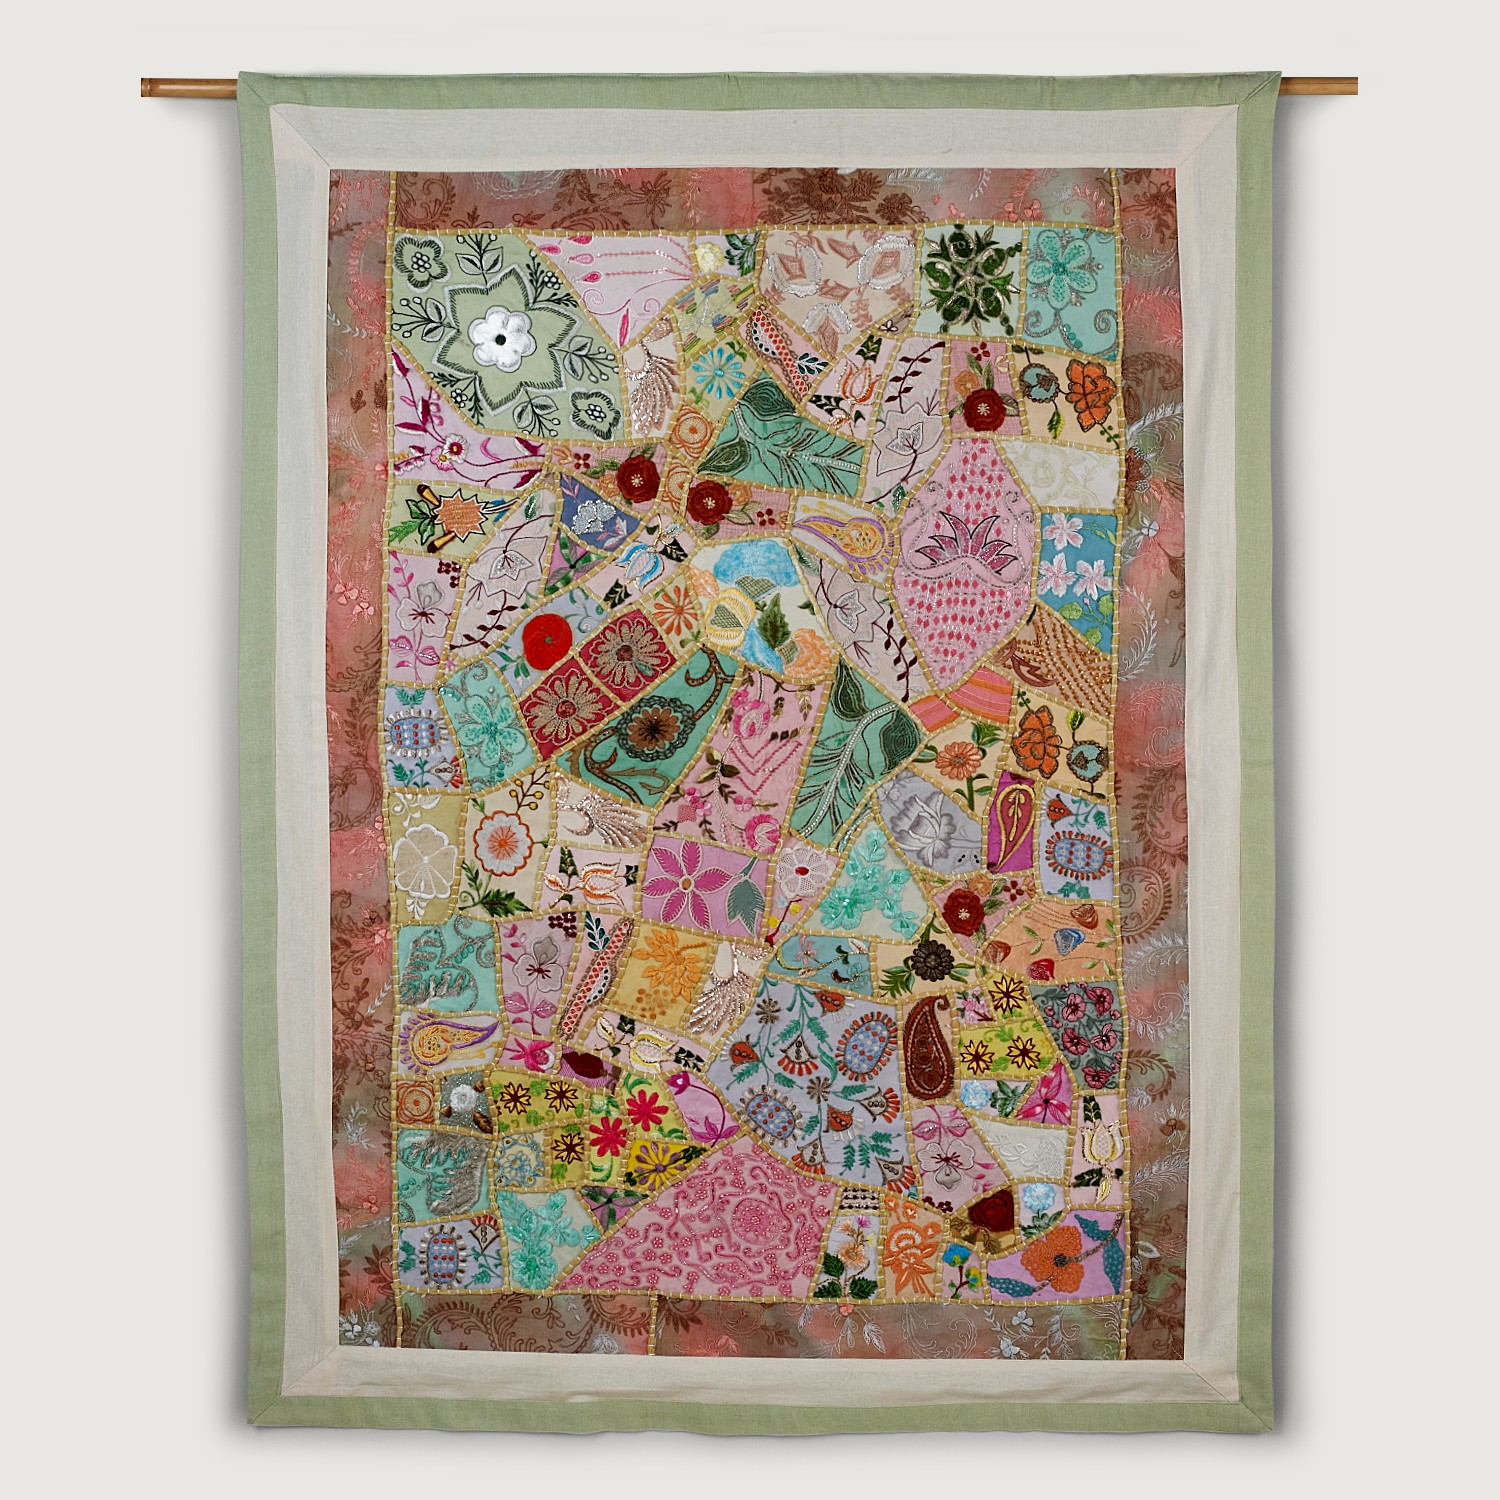 Springtime Dawn Wall Art  - $145 - Made in India from the embroidered pieces that have been saved from saris